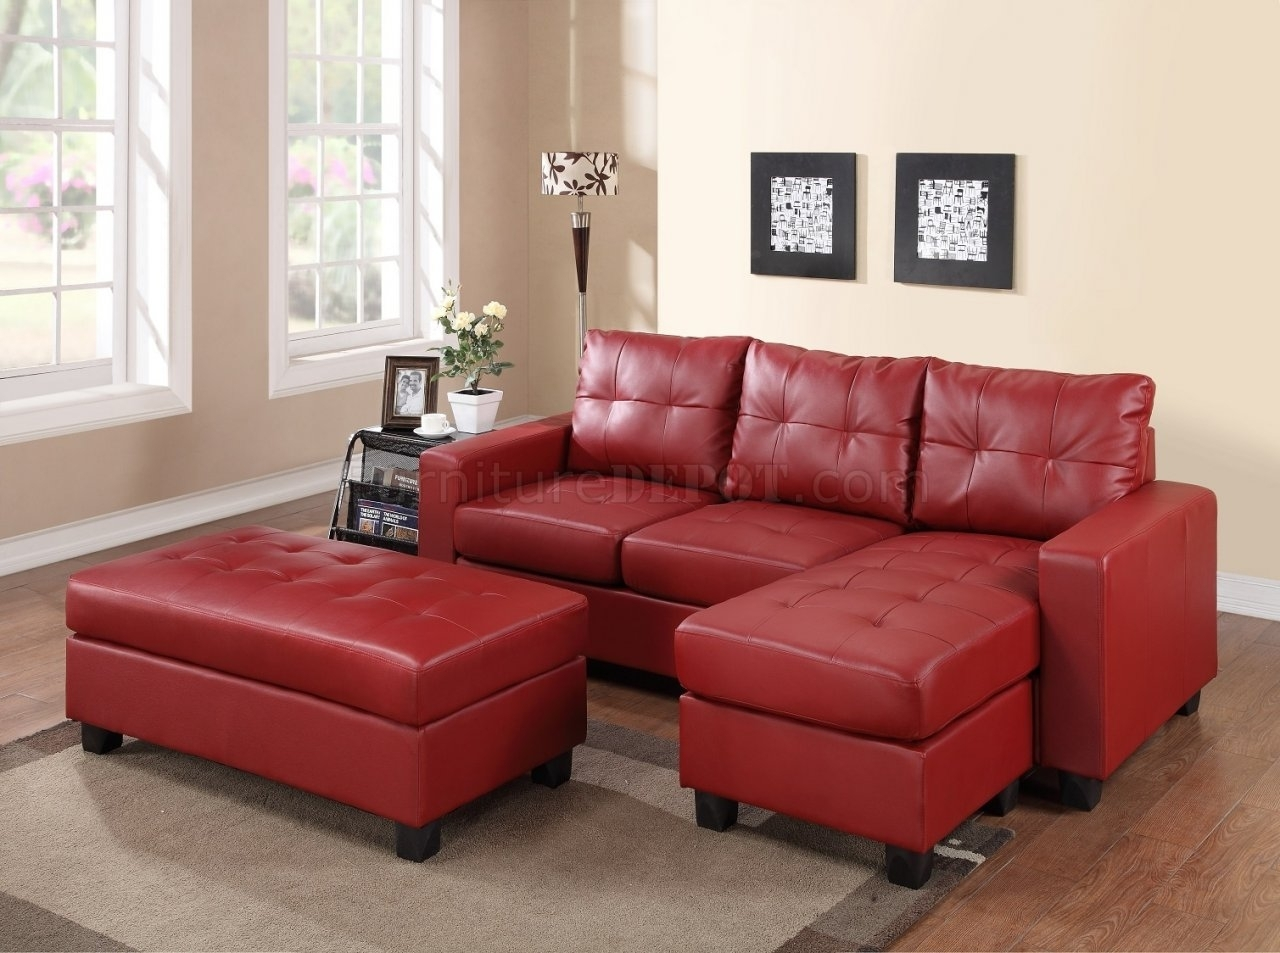 Sofas: Luxury Your Living Room Sofas Design With Red Sectional Sofa for Red Leather Sectional Sofas With Recliners (Image 15 of 15)